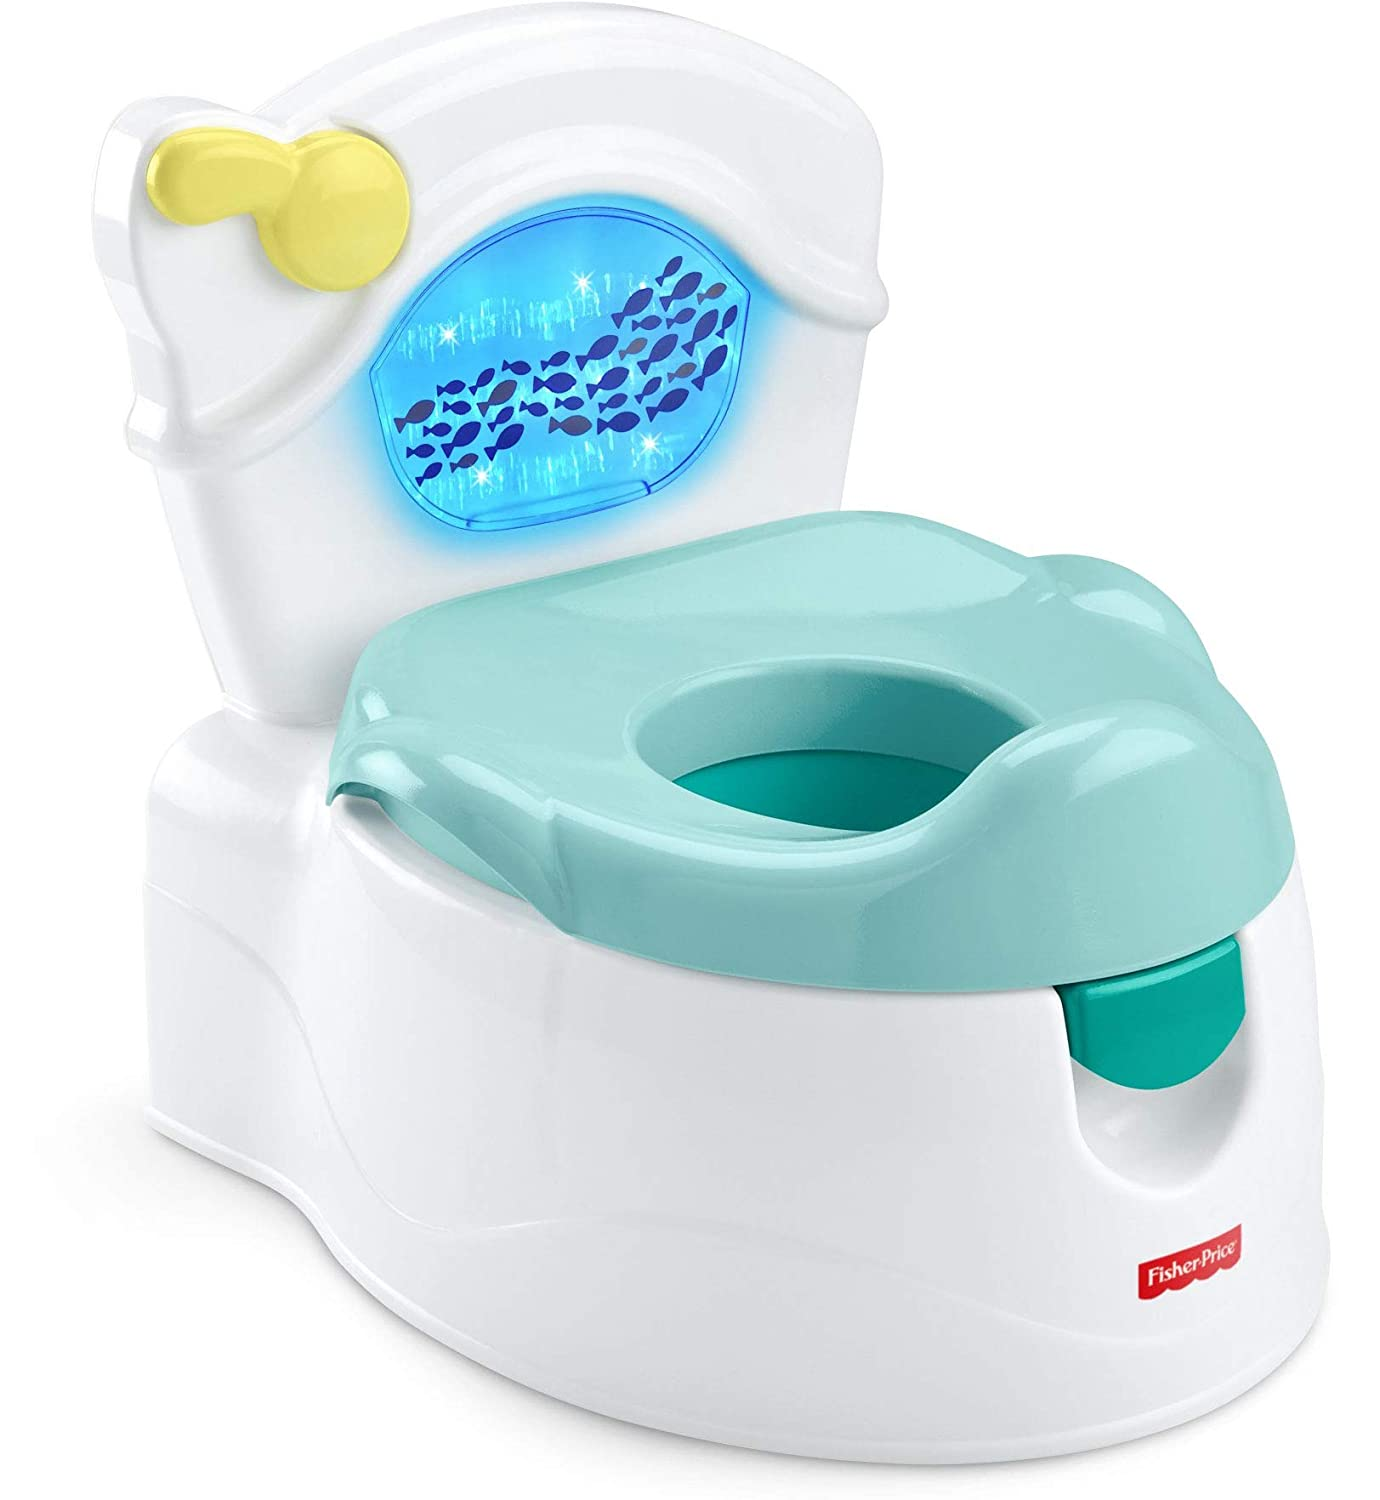 Fisher-Price Sea Me Flush Potty, Musical Toddler Training Chair, Multi (GMP68)